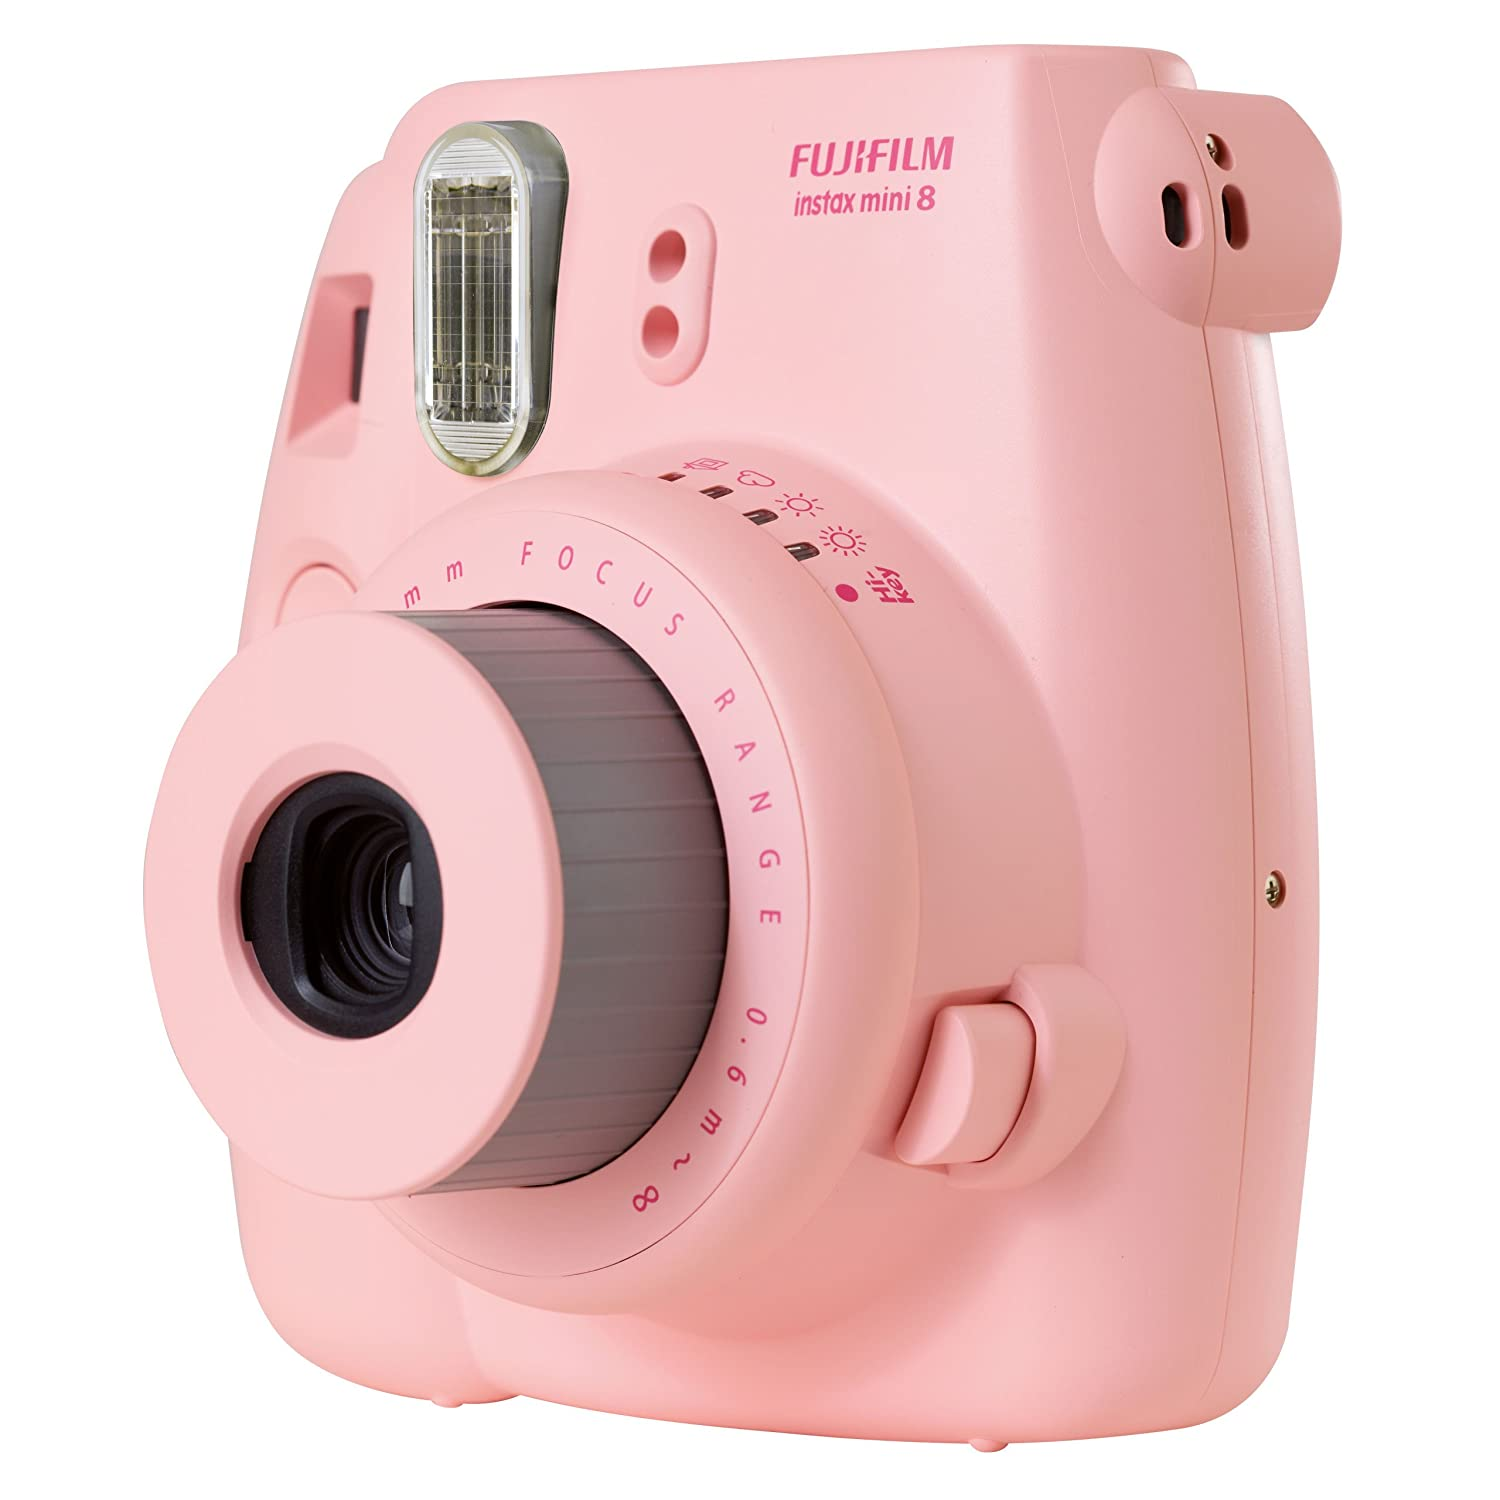 Image result for instax mini 8 pink